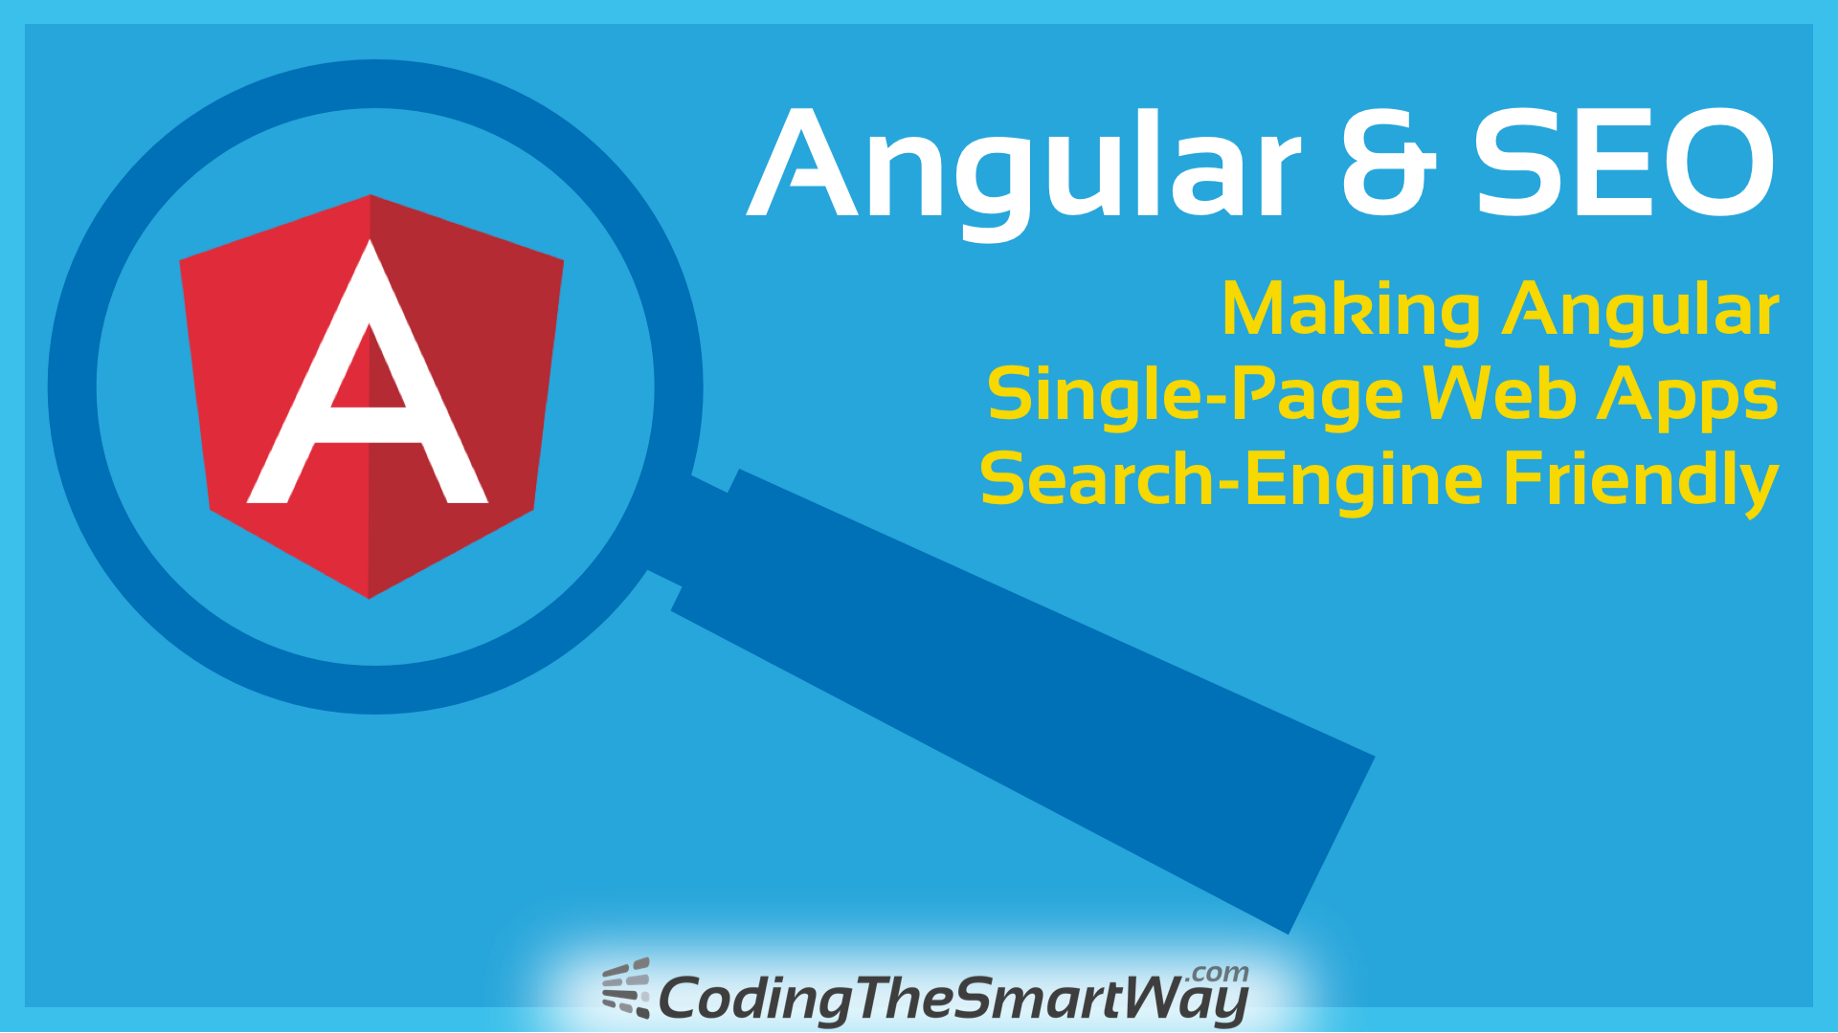 Are Search Engines Making Students >> Angular Seo Making Angular 6 Single Page Web Apps Search Engine